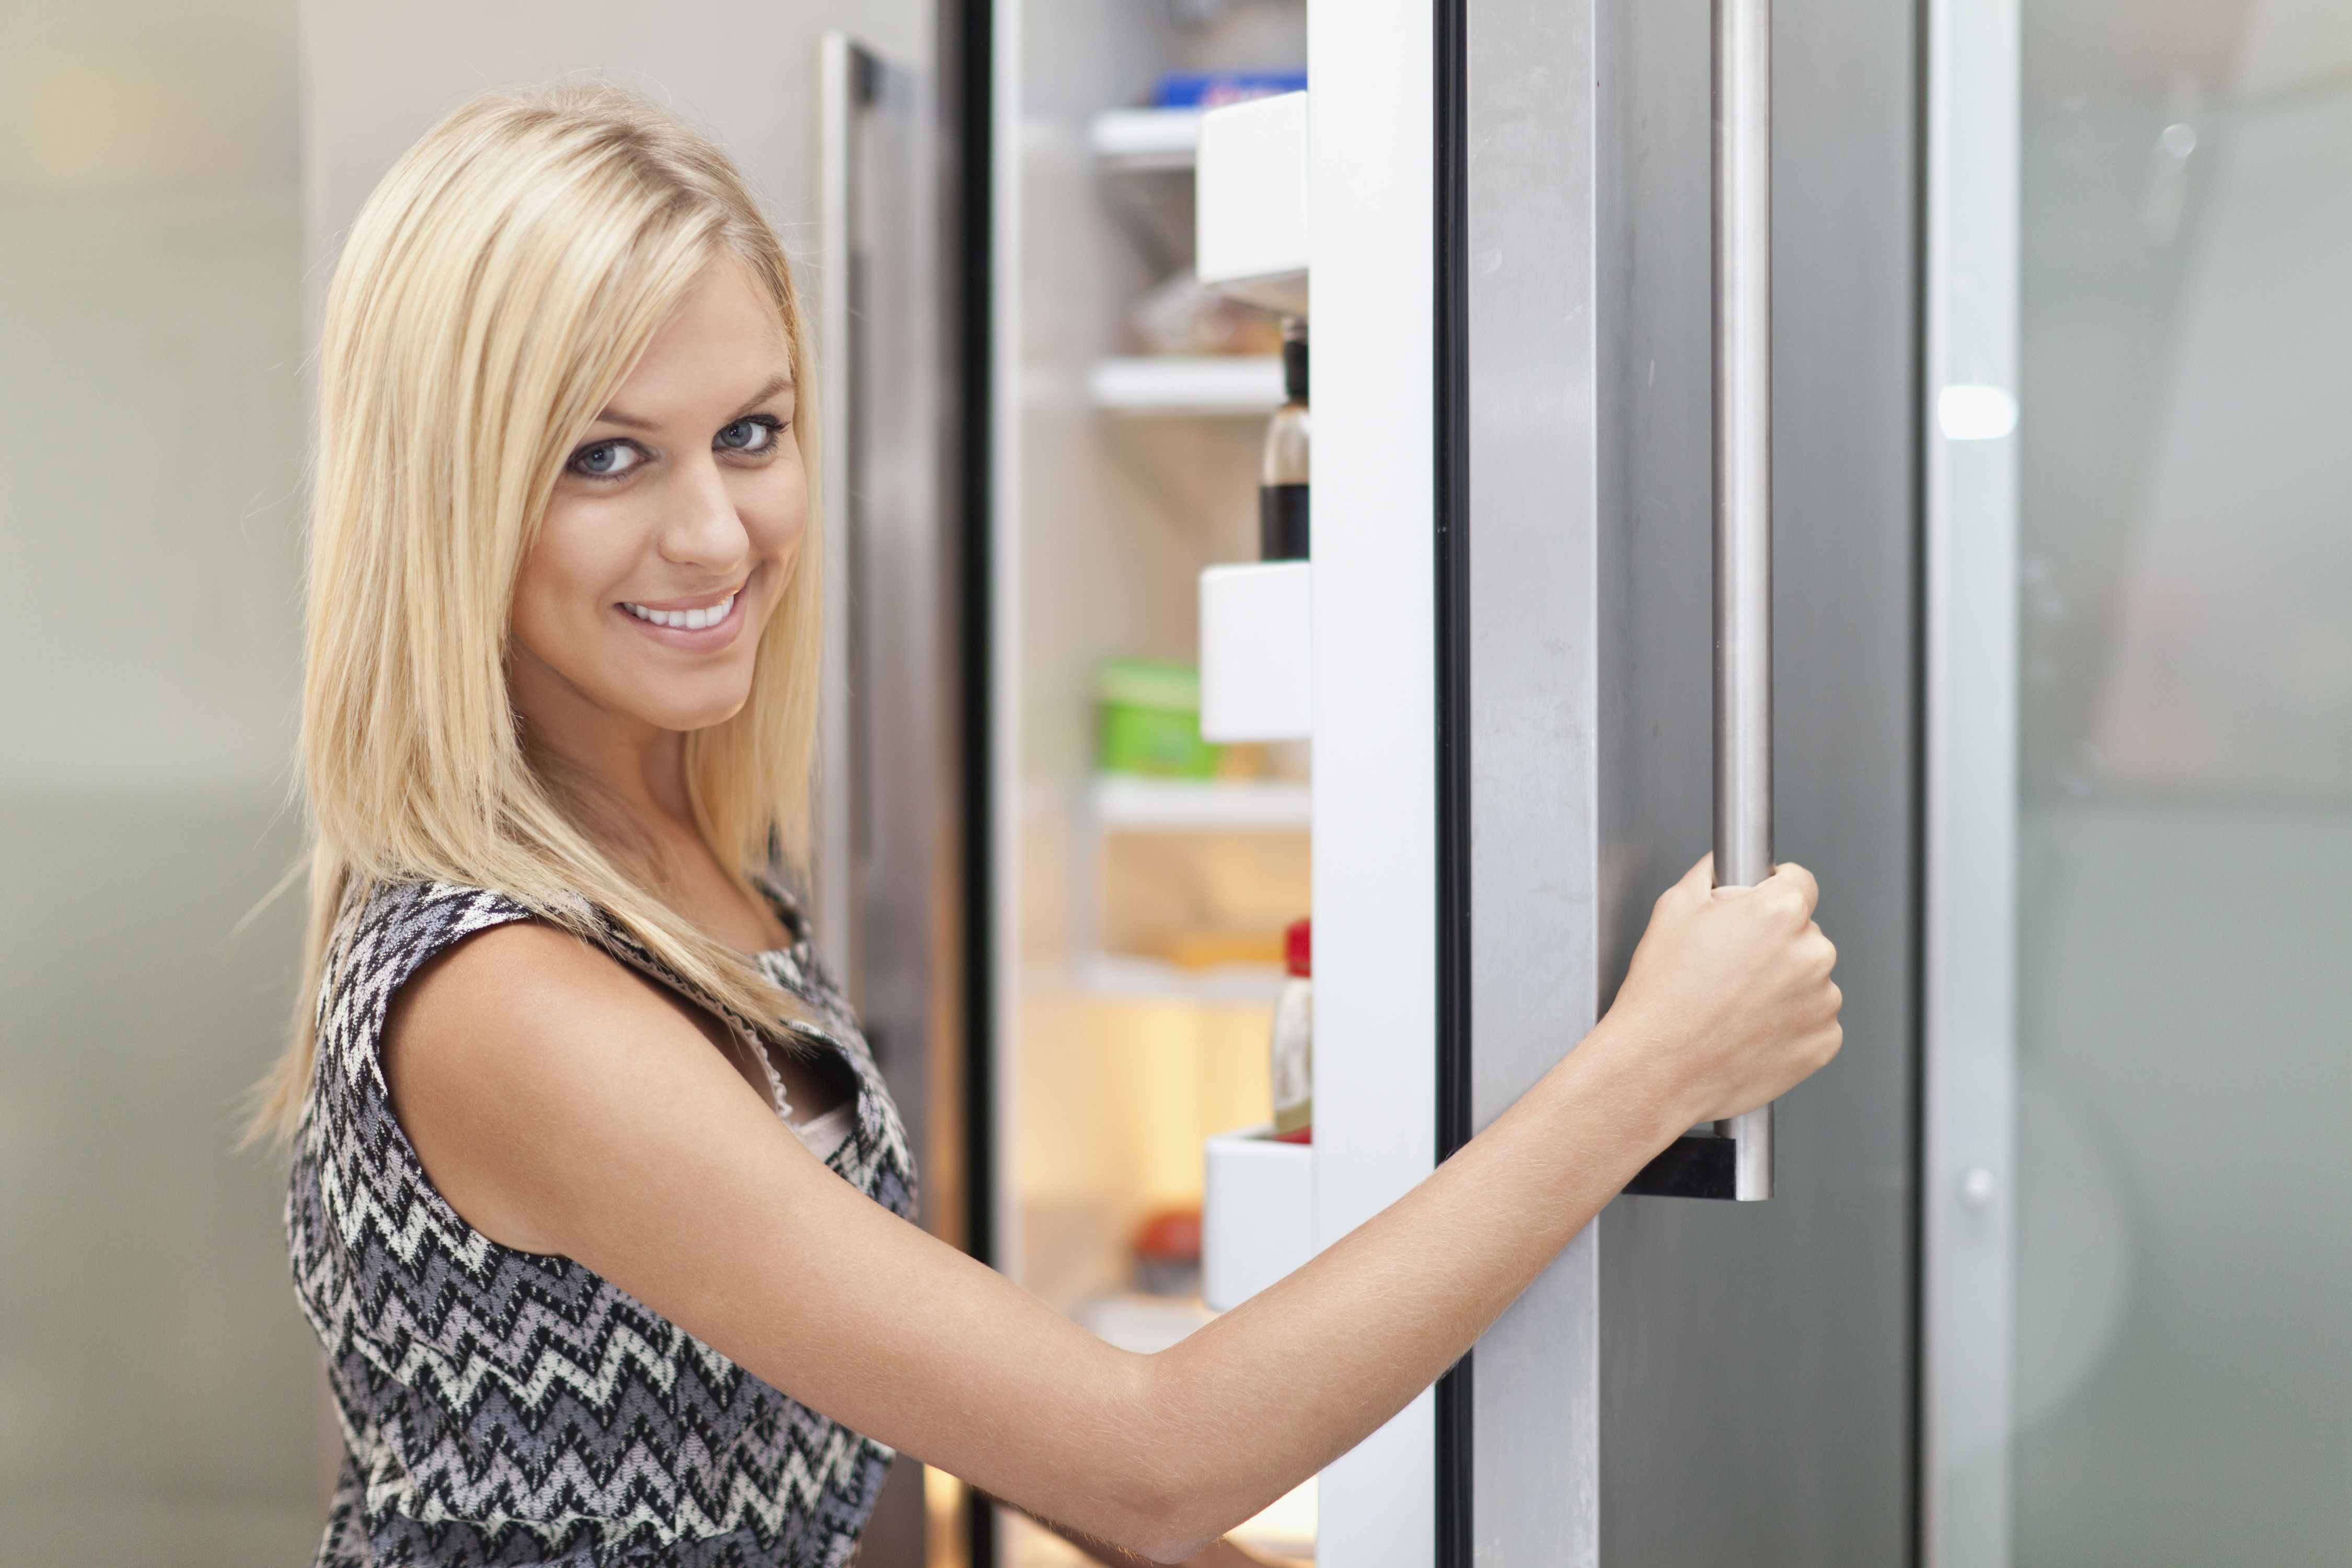 To Lose Weight, Change This One Thing in Your Fridge